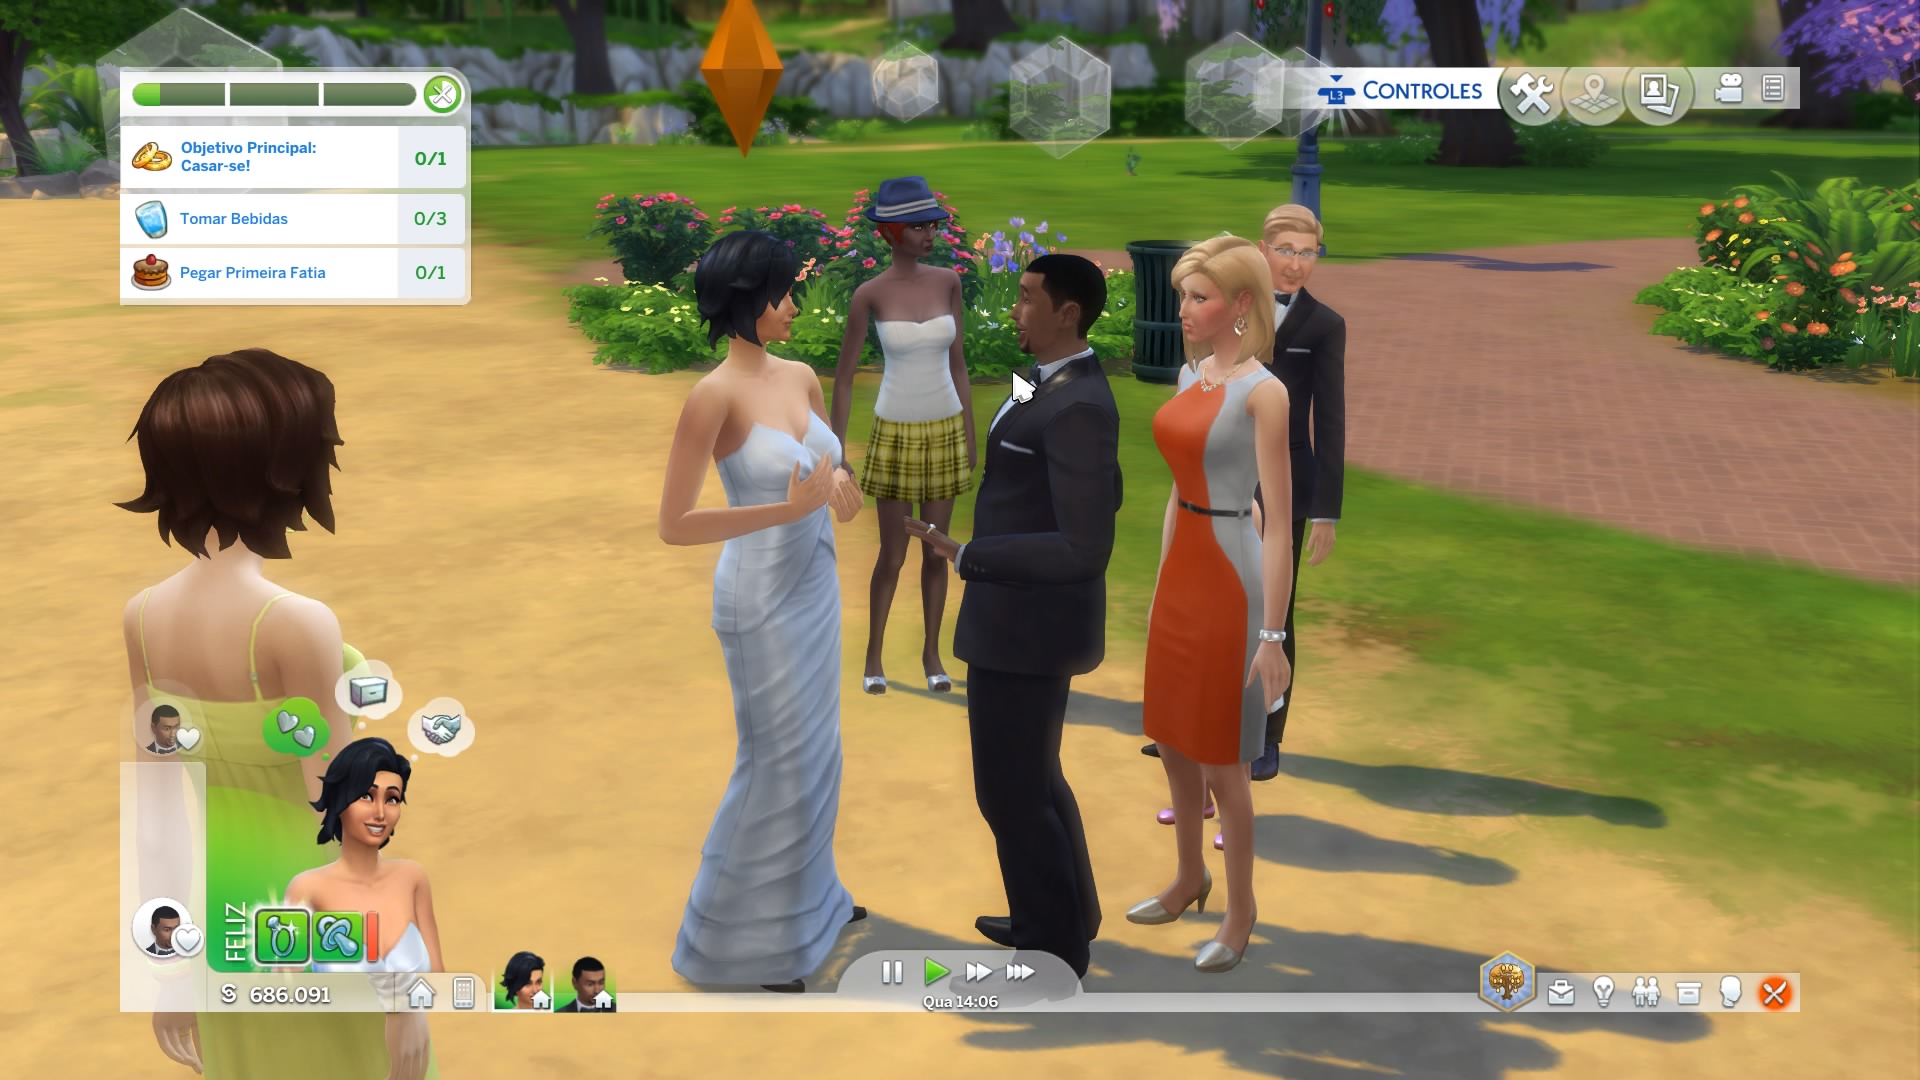 The Sims 4: Vale a Pena? 3